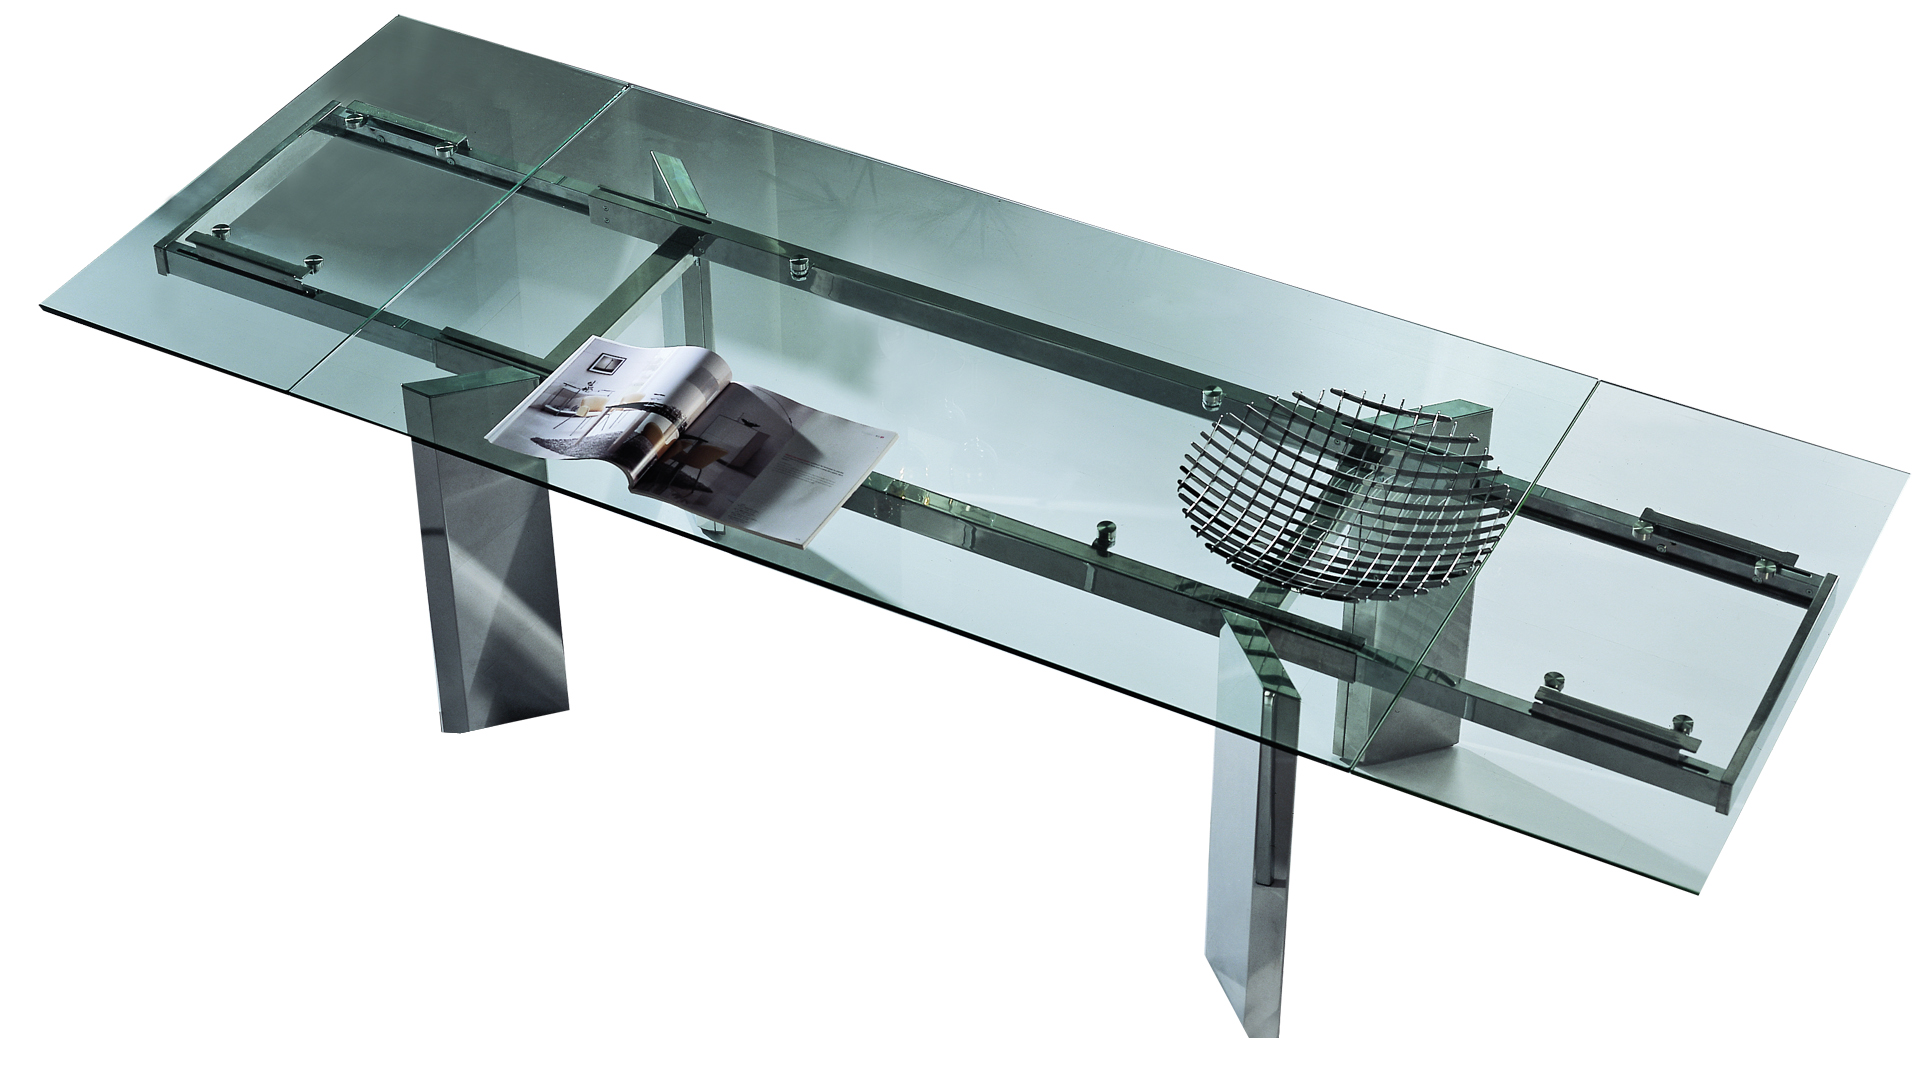 Table ronde verre design moderne accueil design et mobilier for Table verre rallonge